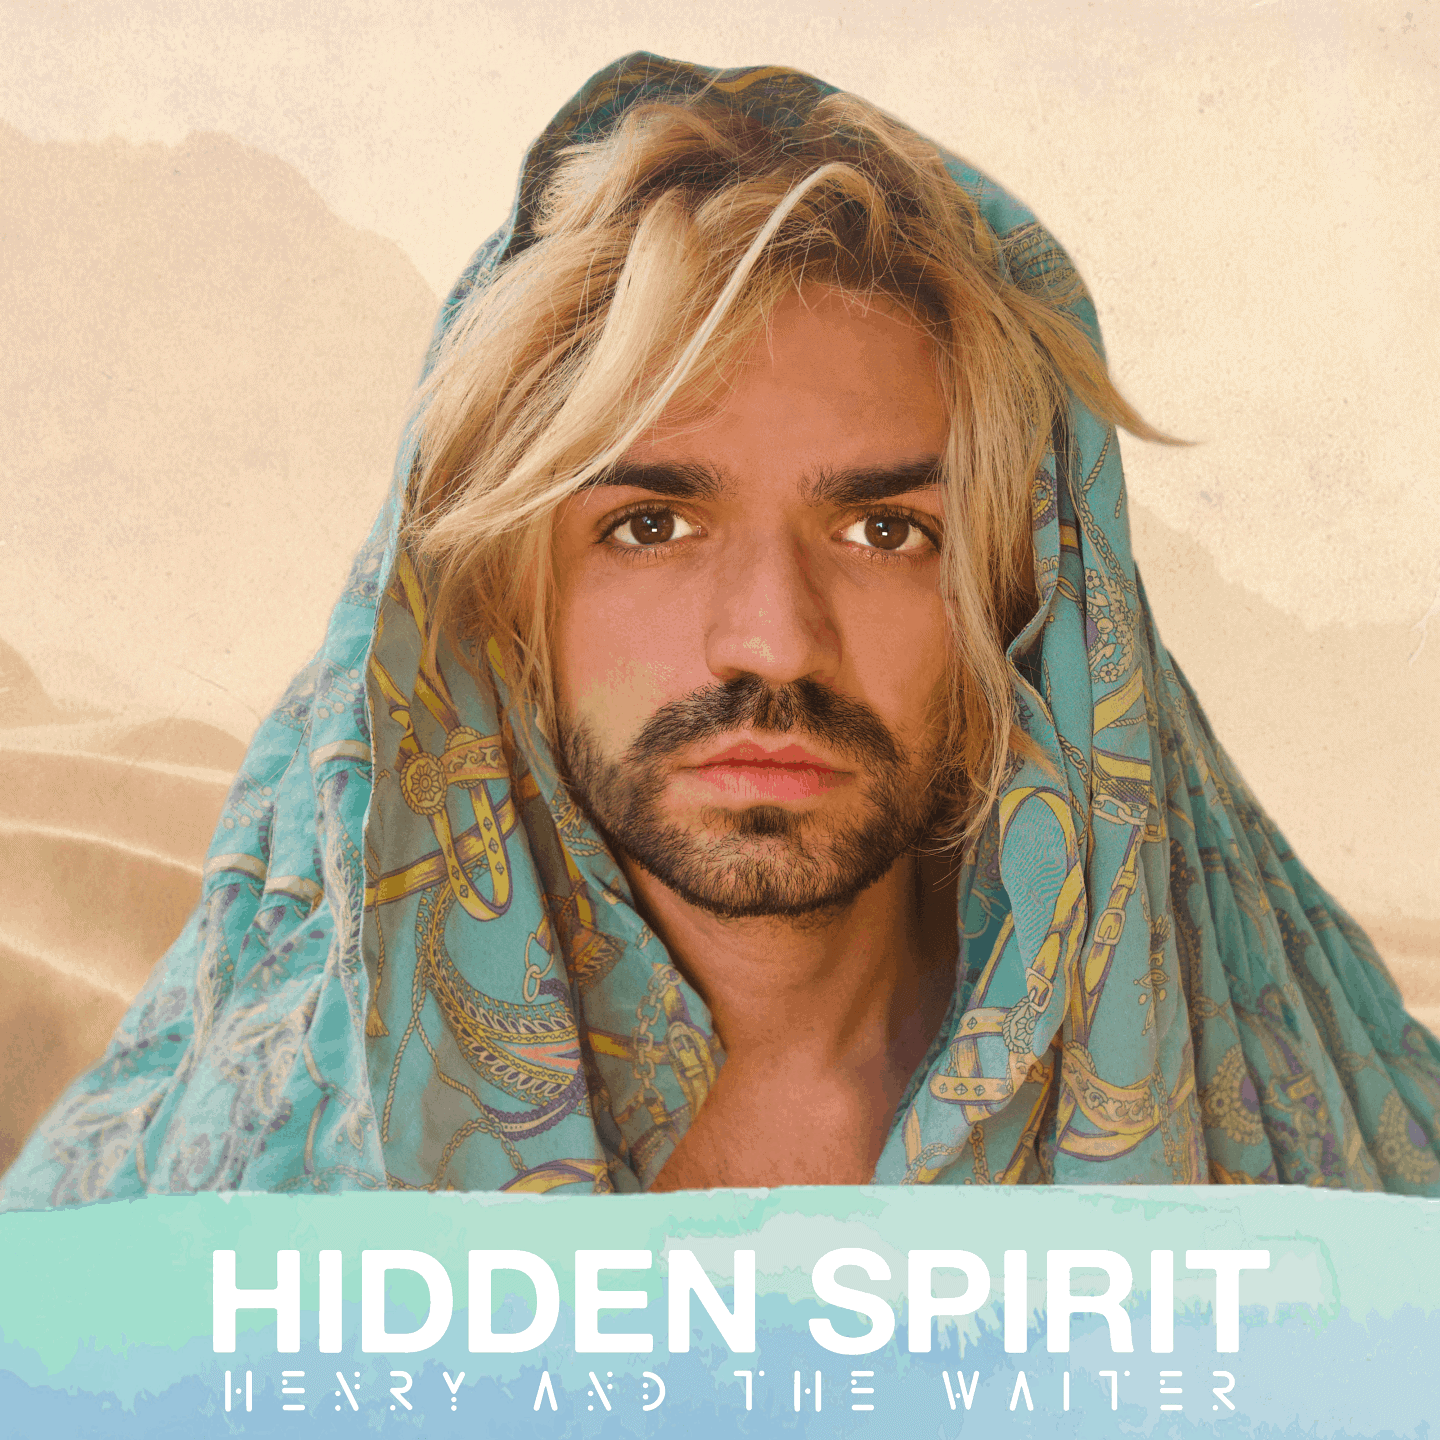 Hidden Spirit EP Cover 1440x1440 1 - Home